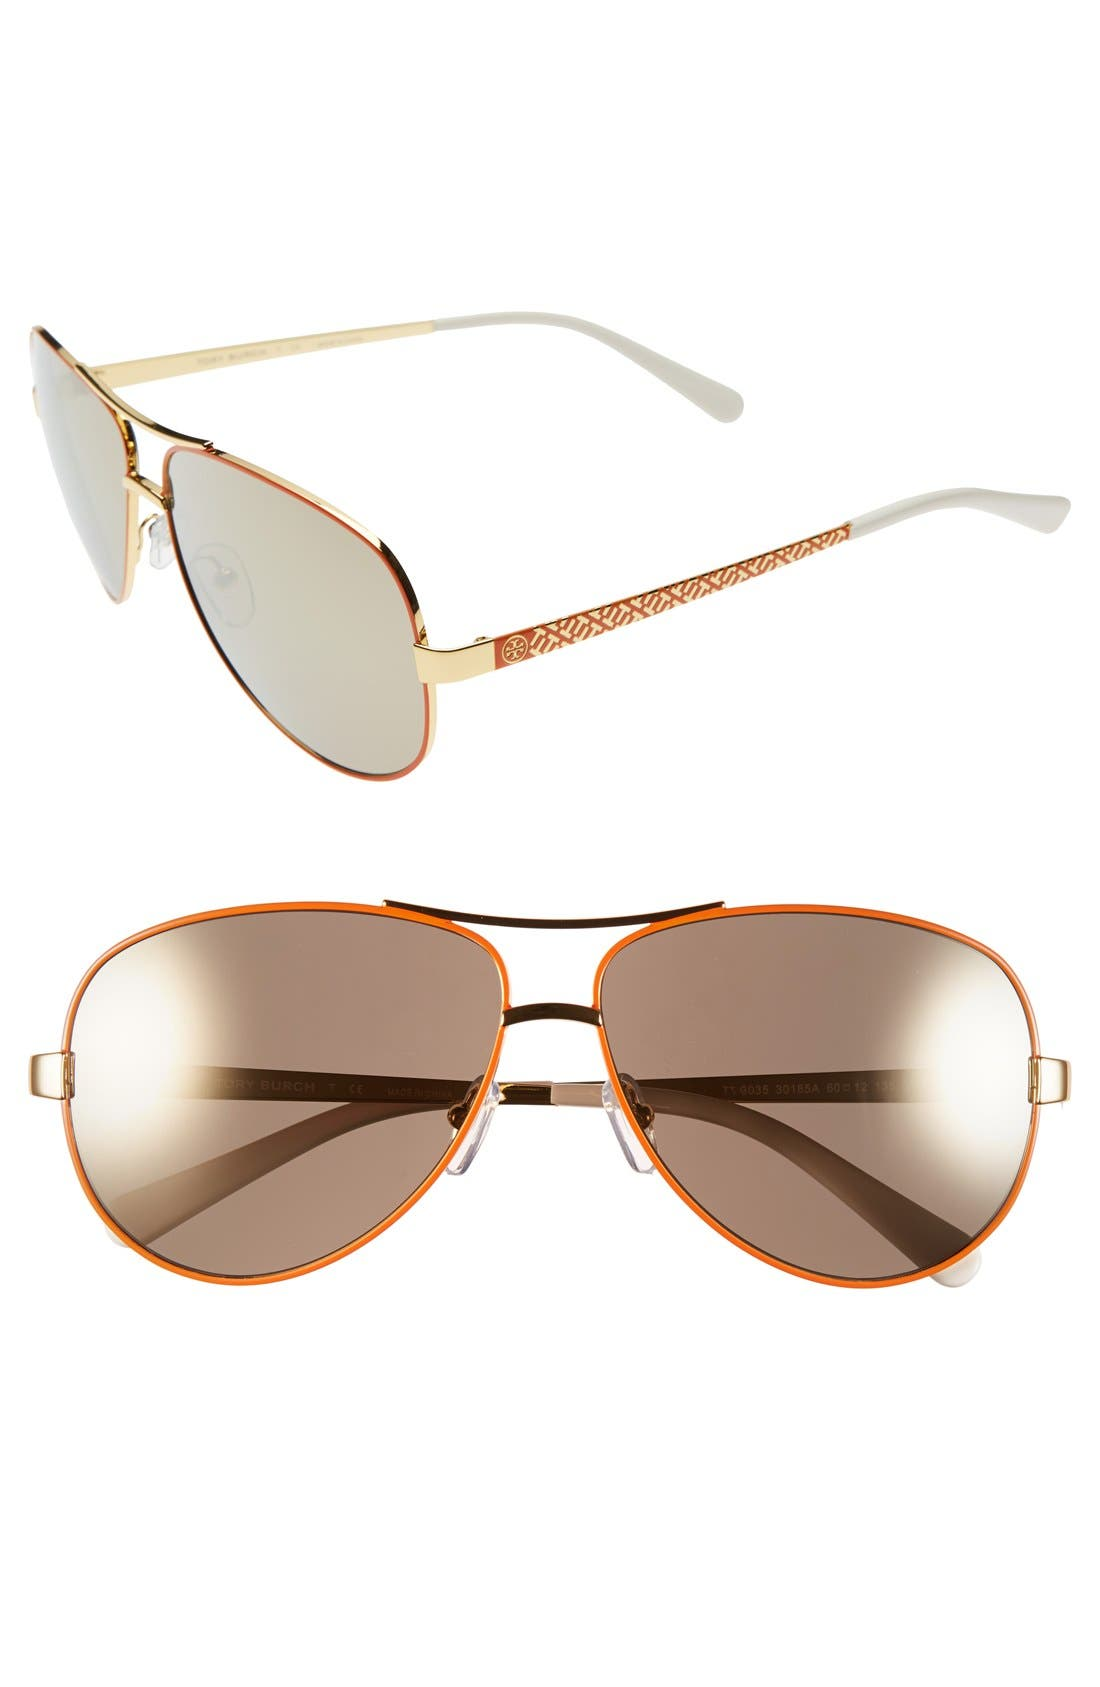 Alternate Image 1 Selected - Tory Burch 60mm Aviator Sunglasses